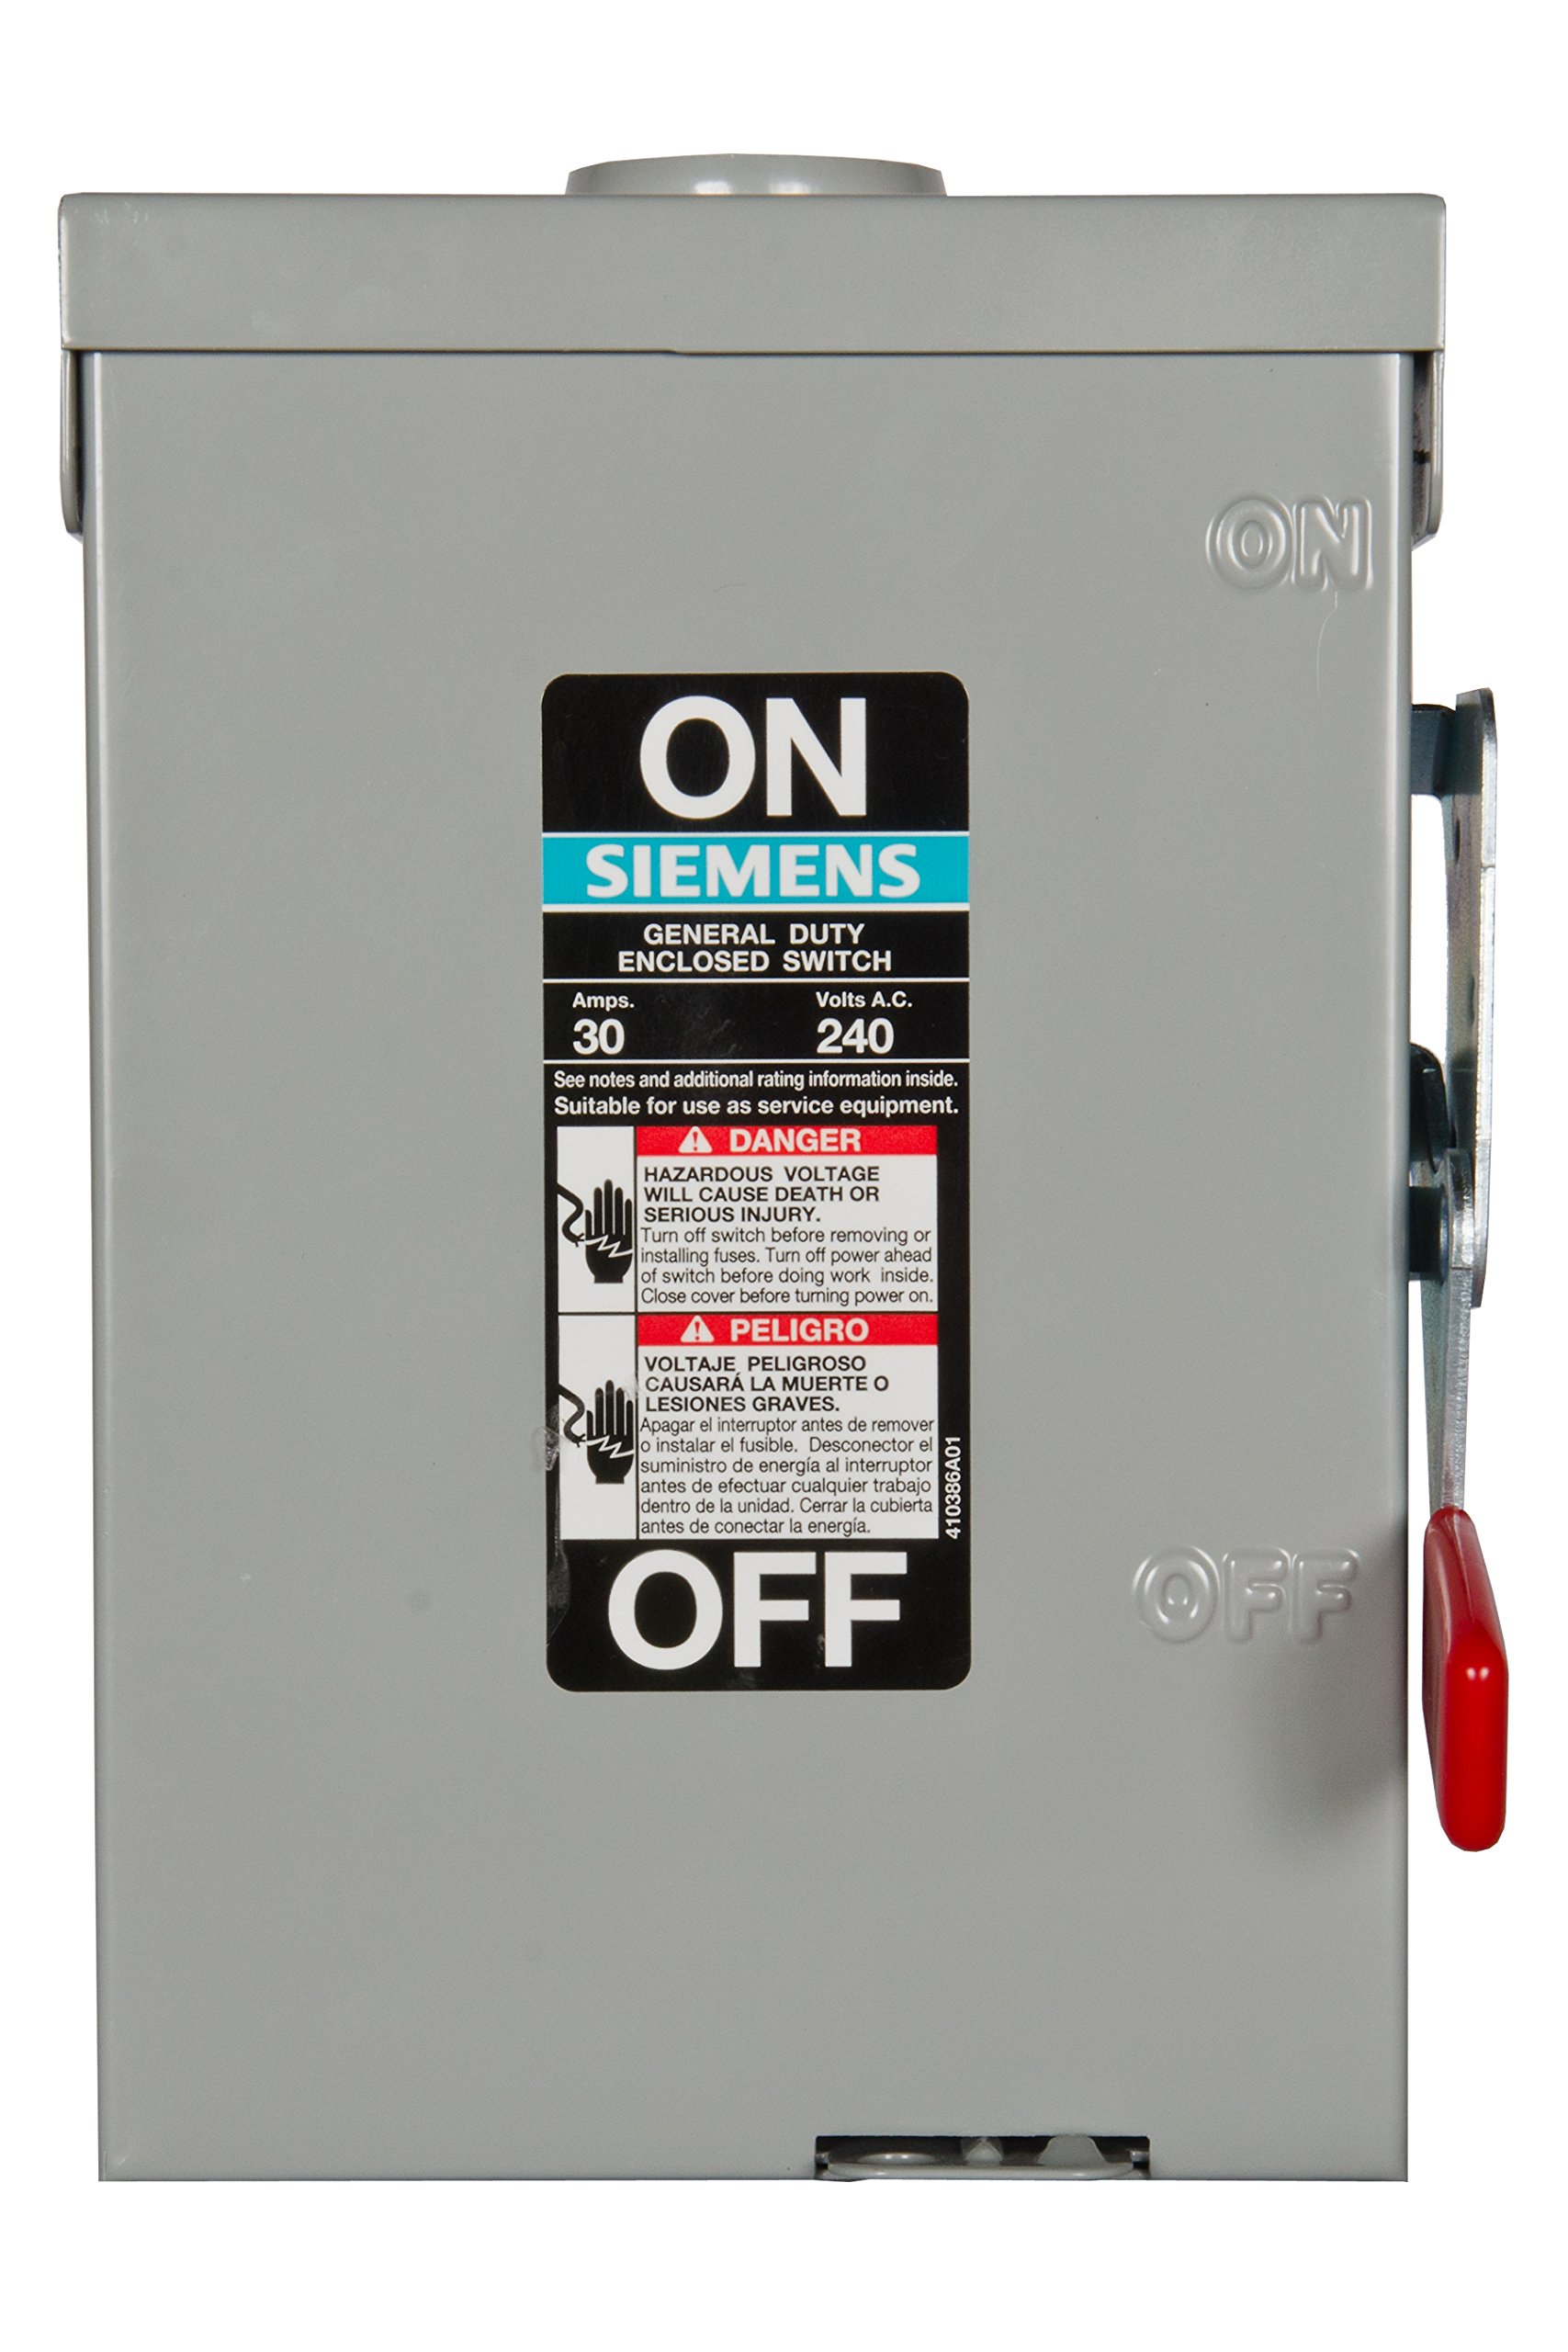 Siemens GF221NR 30-Amp 2 Pole 240-volt Fused W/N Type 3R General Duty Safety Switches by Siemens